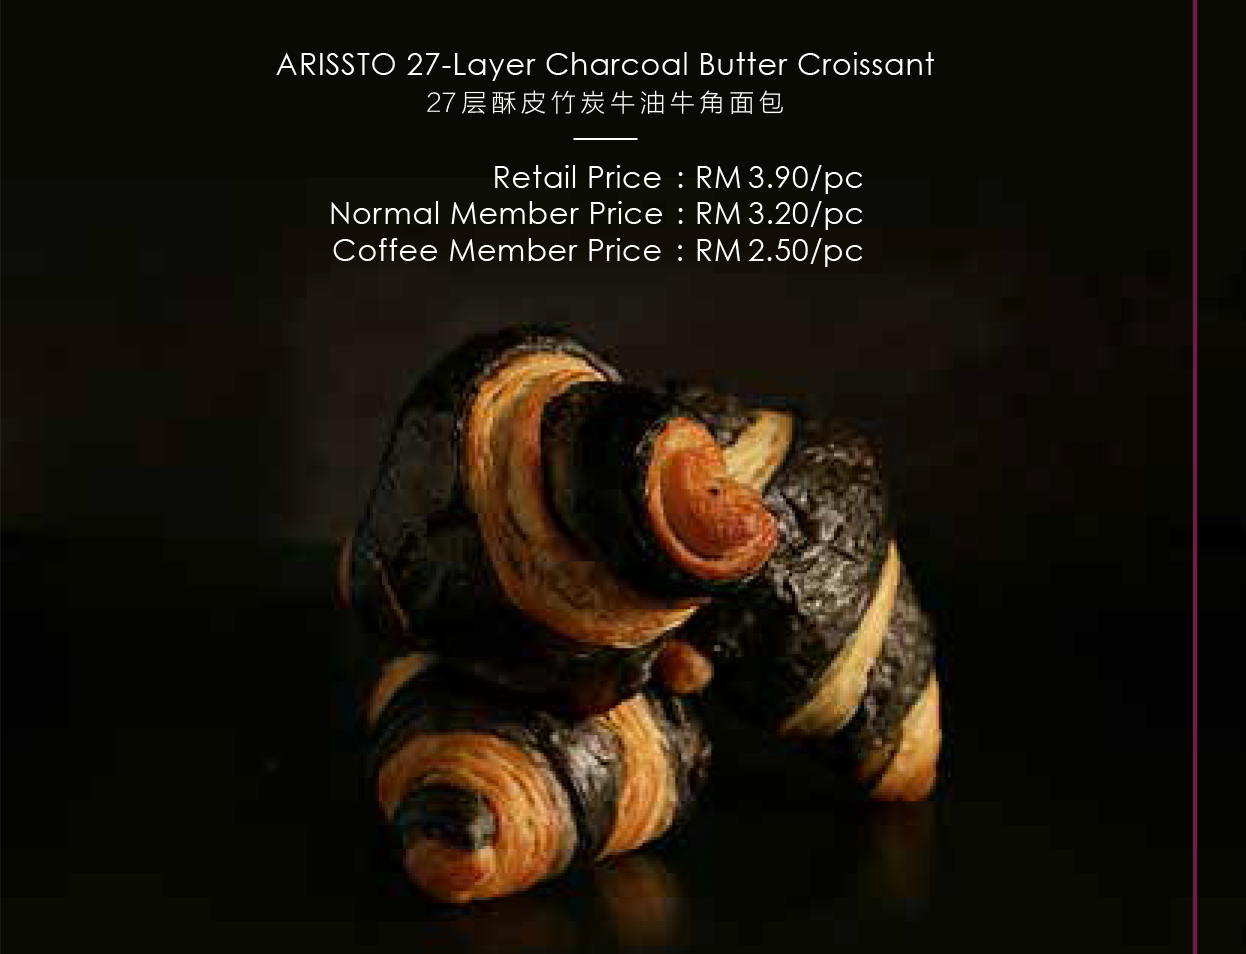 27-Layer Charcoal Butter Croissant